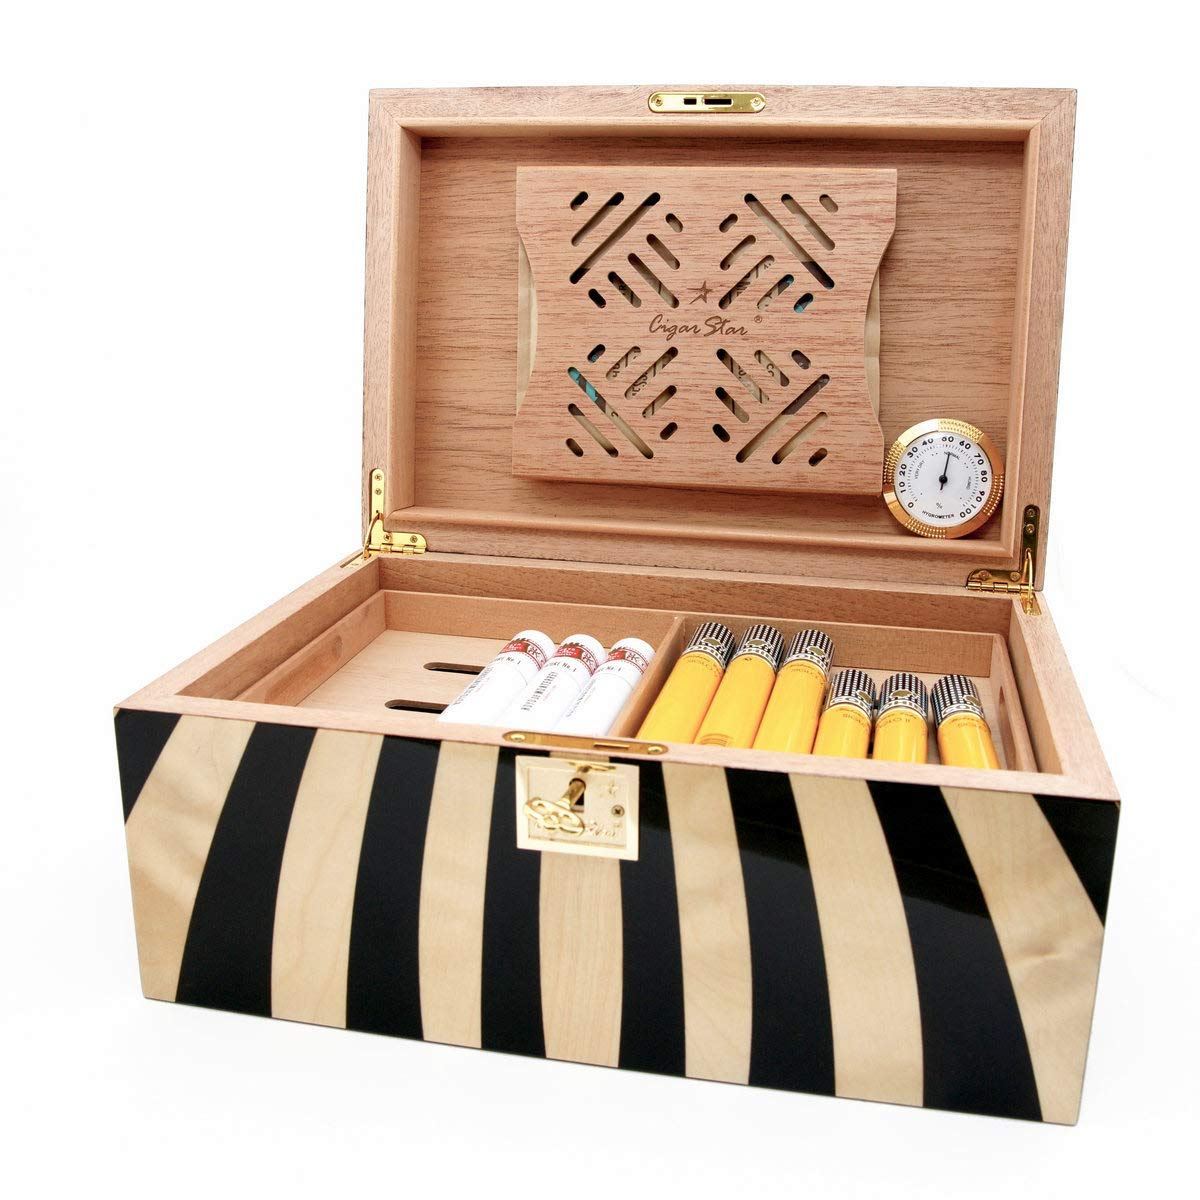 Cigar Star Boketto Humidor Limited Edition Optical Illusion Made from Wood! by Cigar Star (Image #8)